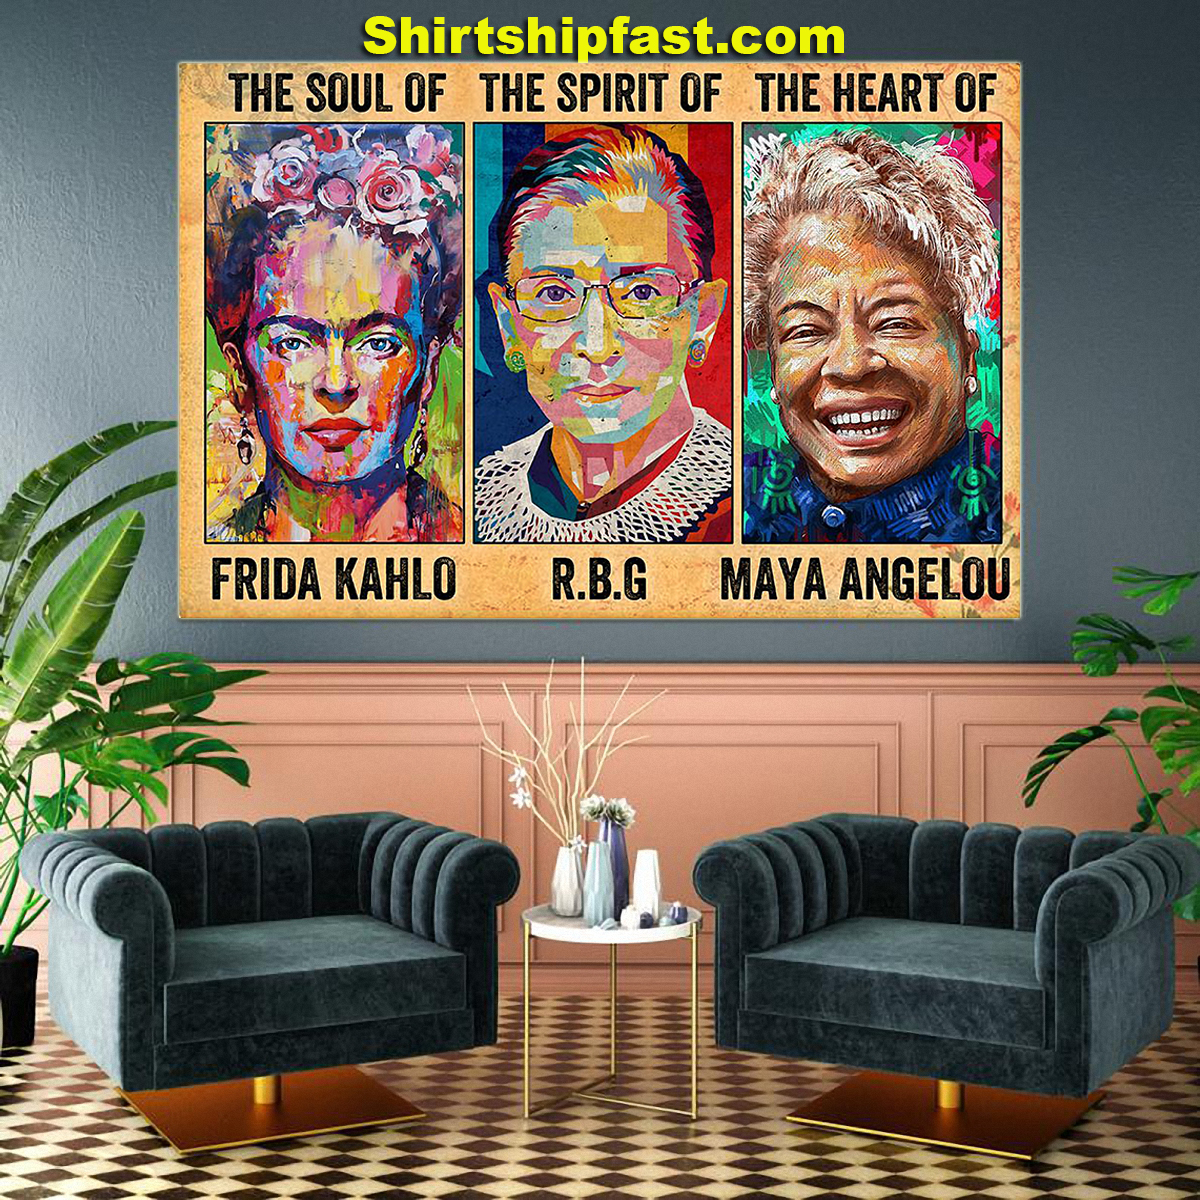 The soul of Frida Kahlo the spirit of RBG the heart of Maya Angelou poster - Picture 1